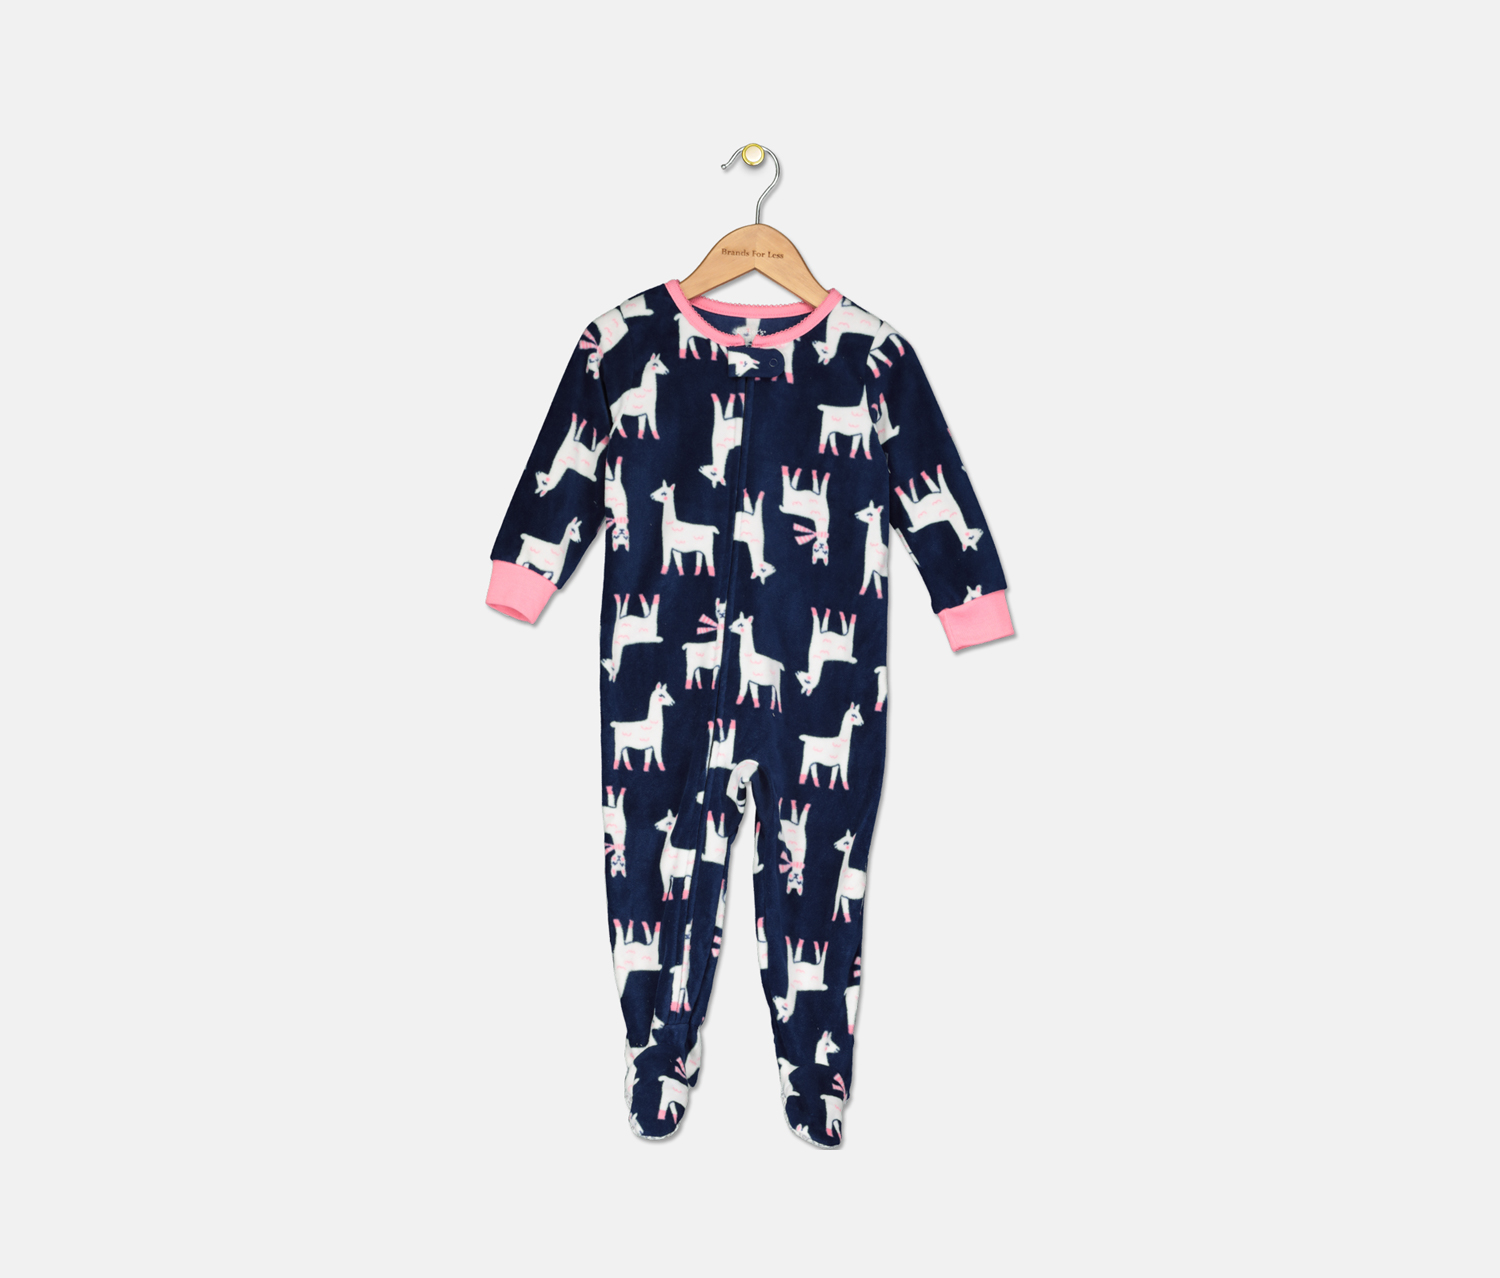 Toddler Girl's Fleece Llama Pajamas, Navy Combo